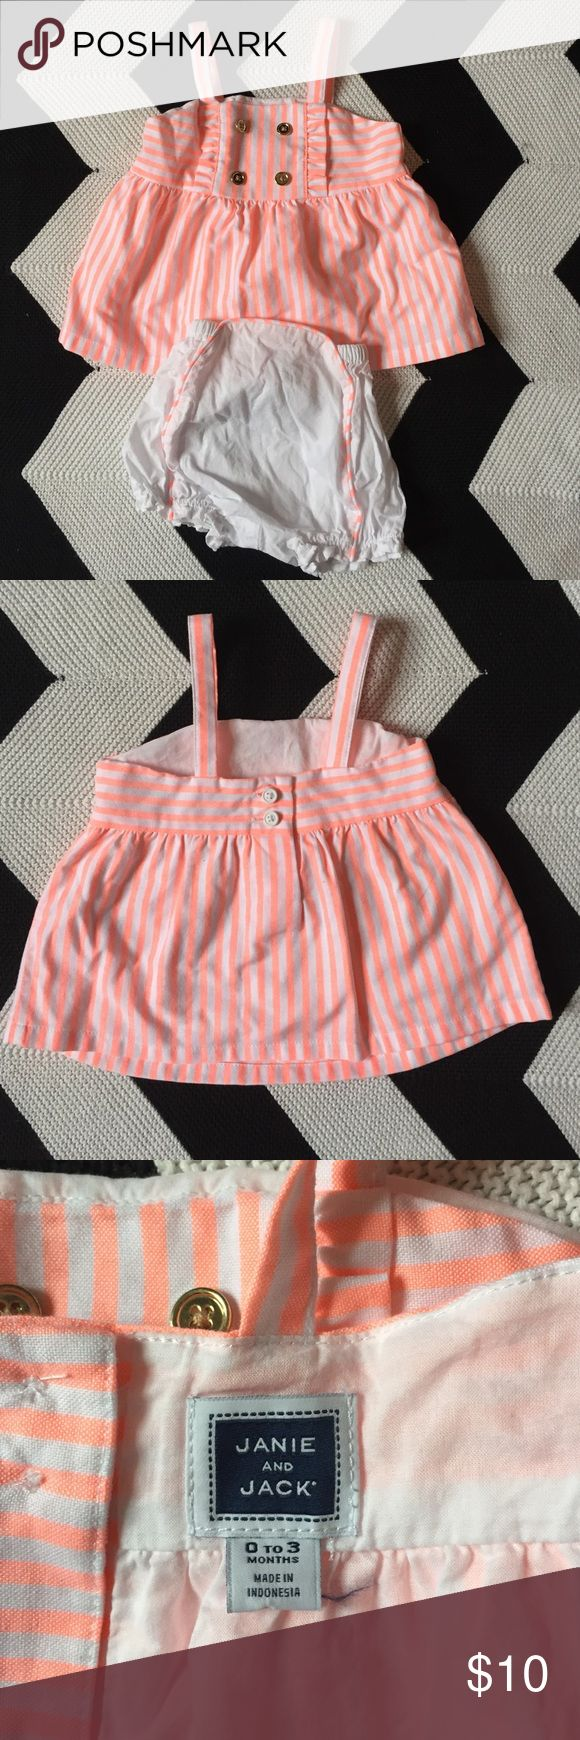 Janie and Jack Sailor Outfit Top and matching bloomers. Neon orange stripes with gold buttons. EUC 0-3 months. Janie and Jack Matching Sets